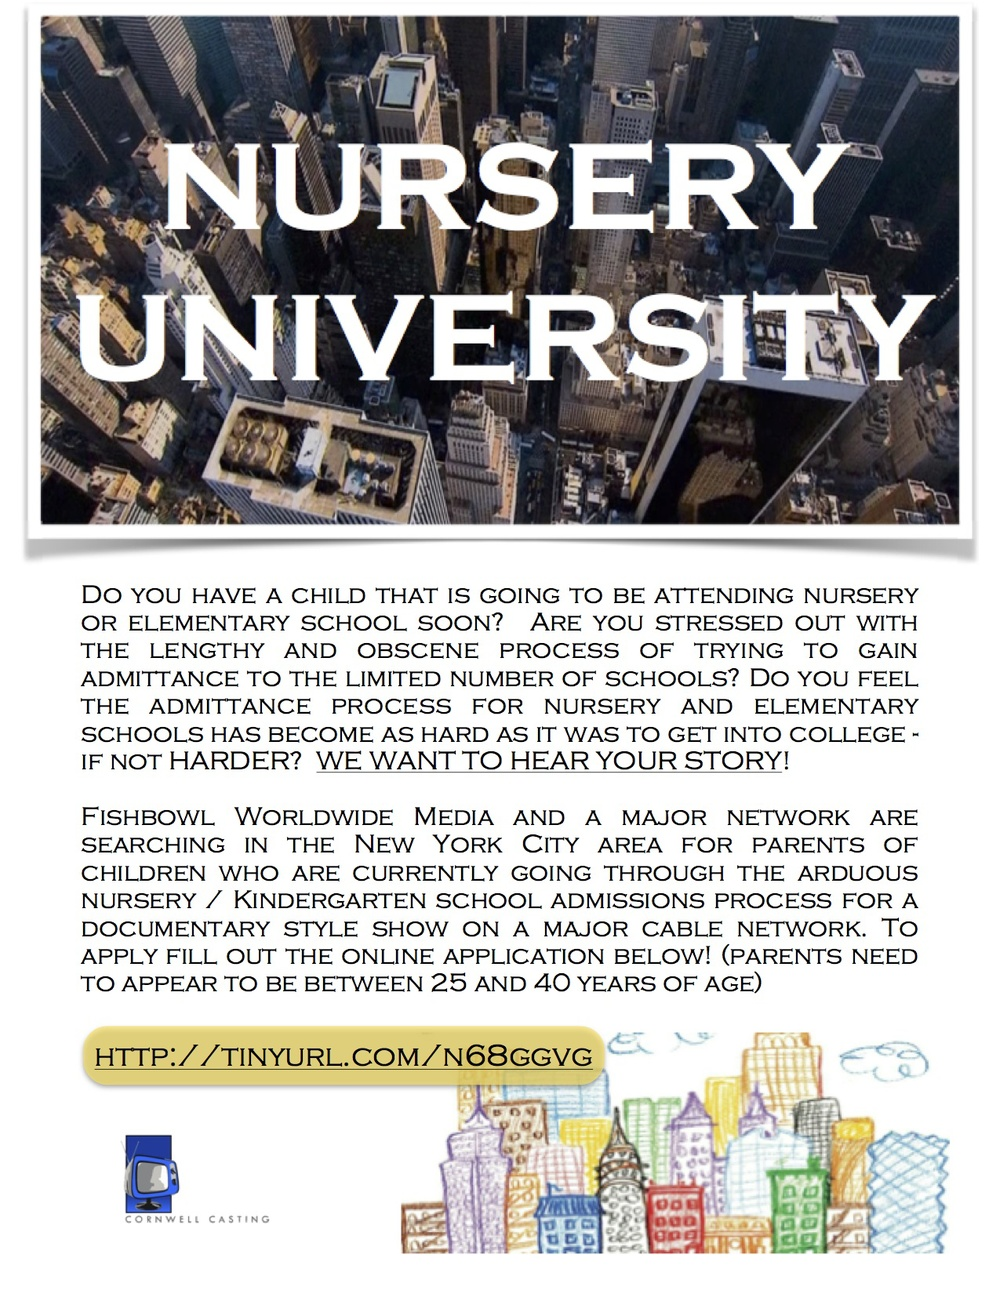 NURSERY UNIVERSITY FLYER copy.jpg